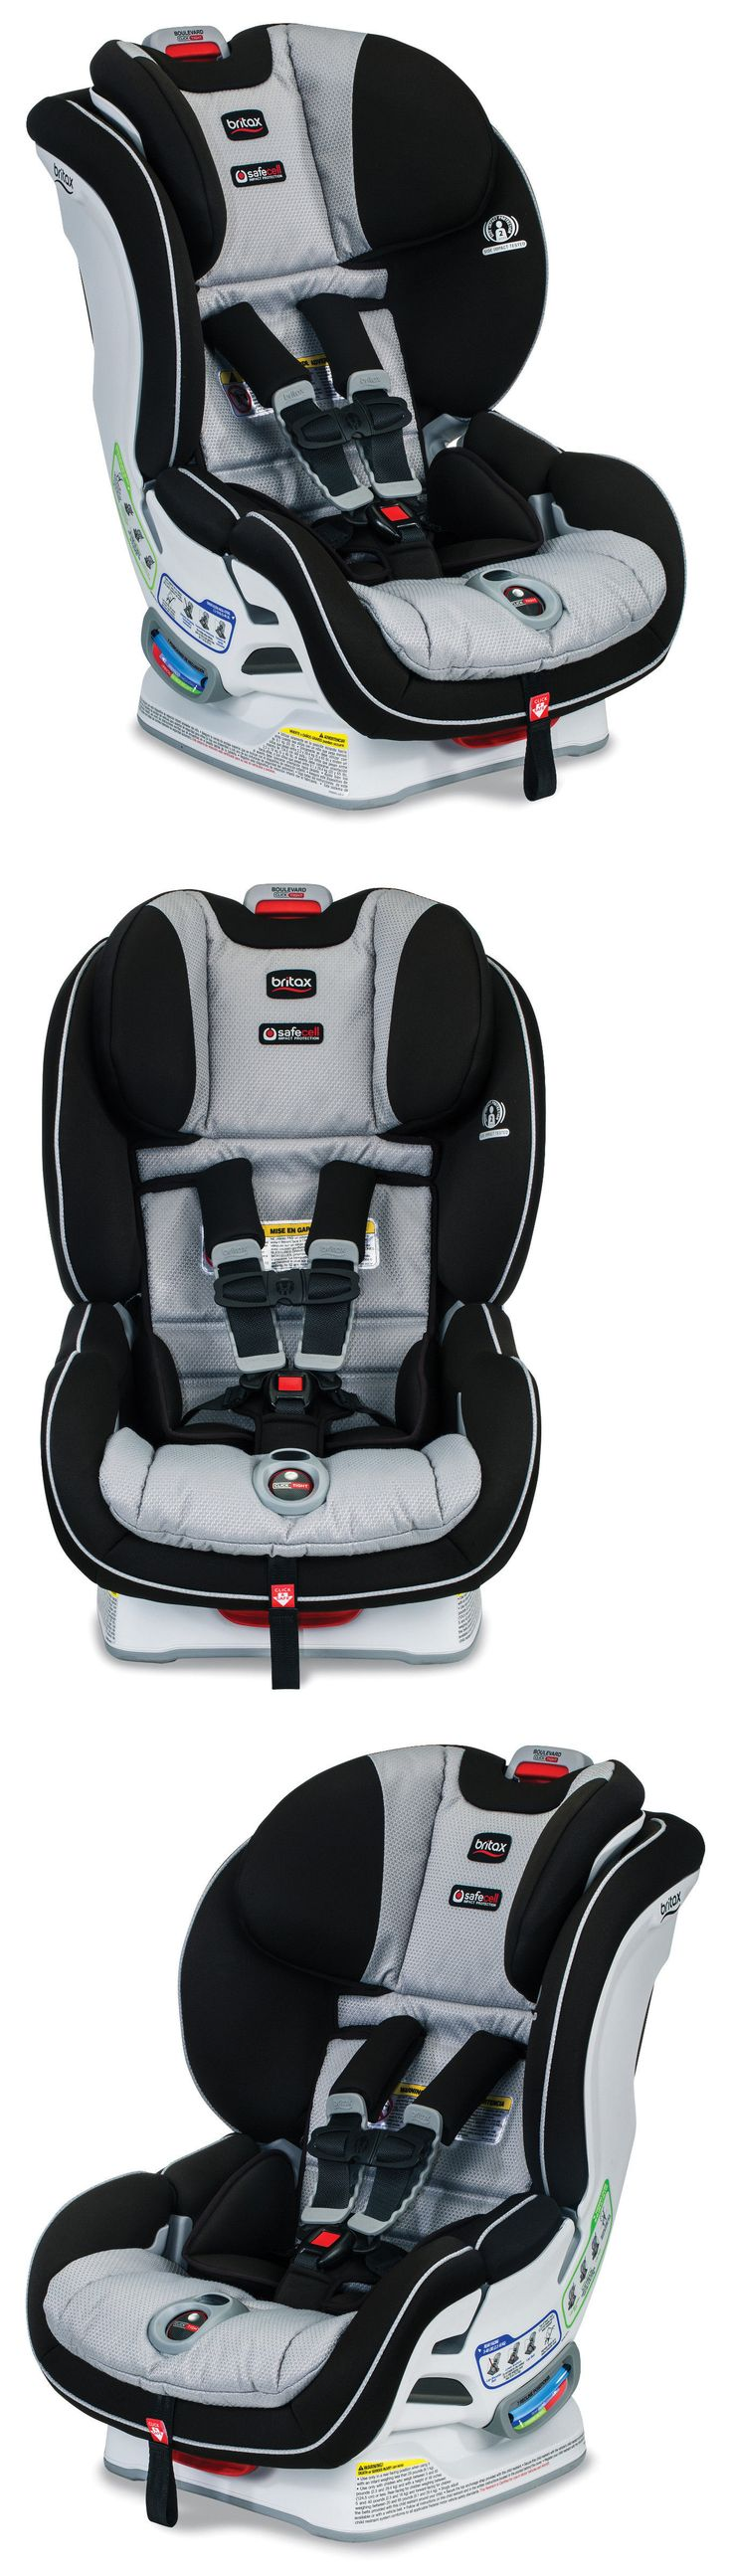 Convertible Car Seat 5-40lbs 66695: Britax 2017 Boulevard Clicktight Car Seat In Trek Brand New!! -> BUY IT NOW ONLY: $265.99 on eBay!